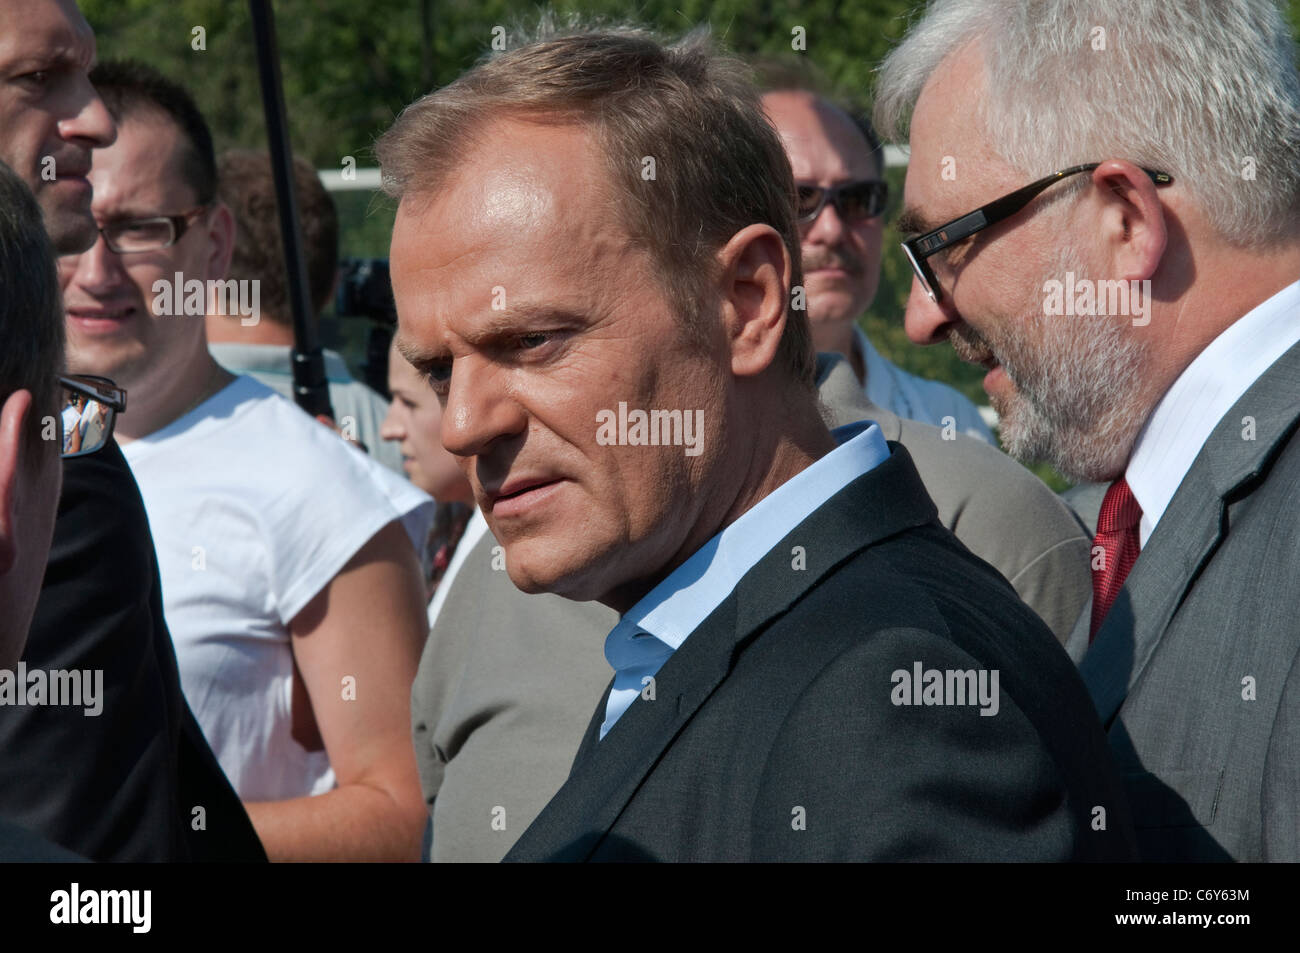 Prime Minister of Poland Donald Tusk mixing with crowd, opening day at new Redzinski Bridge in Wrocław, Lower Silesia, - Stock Image